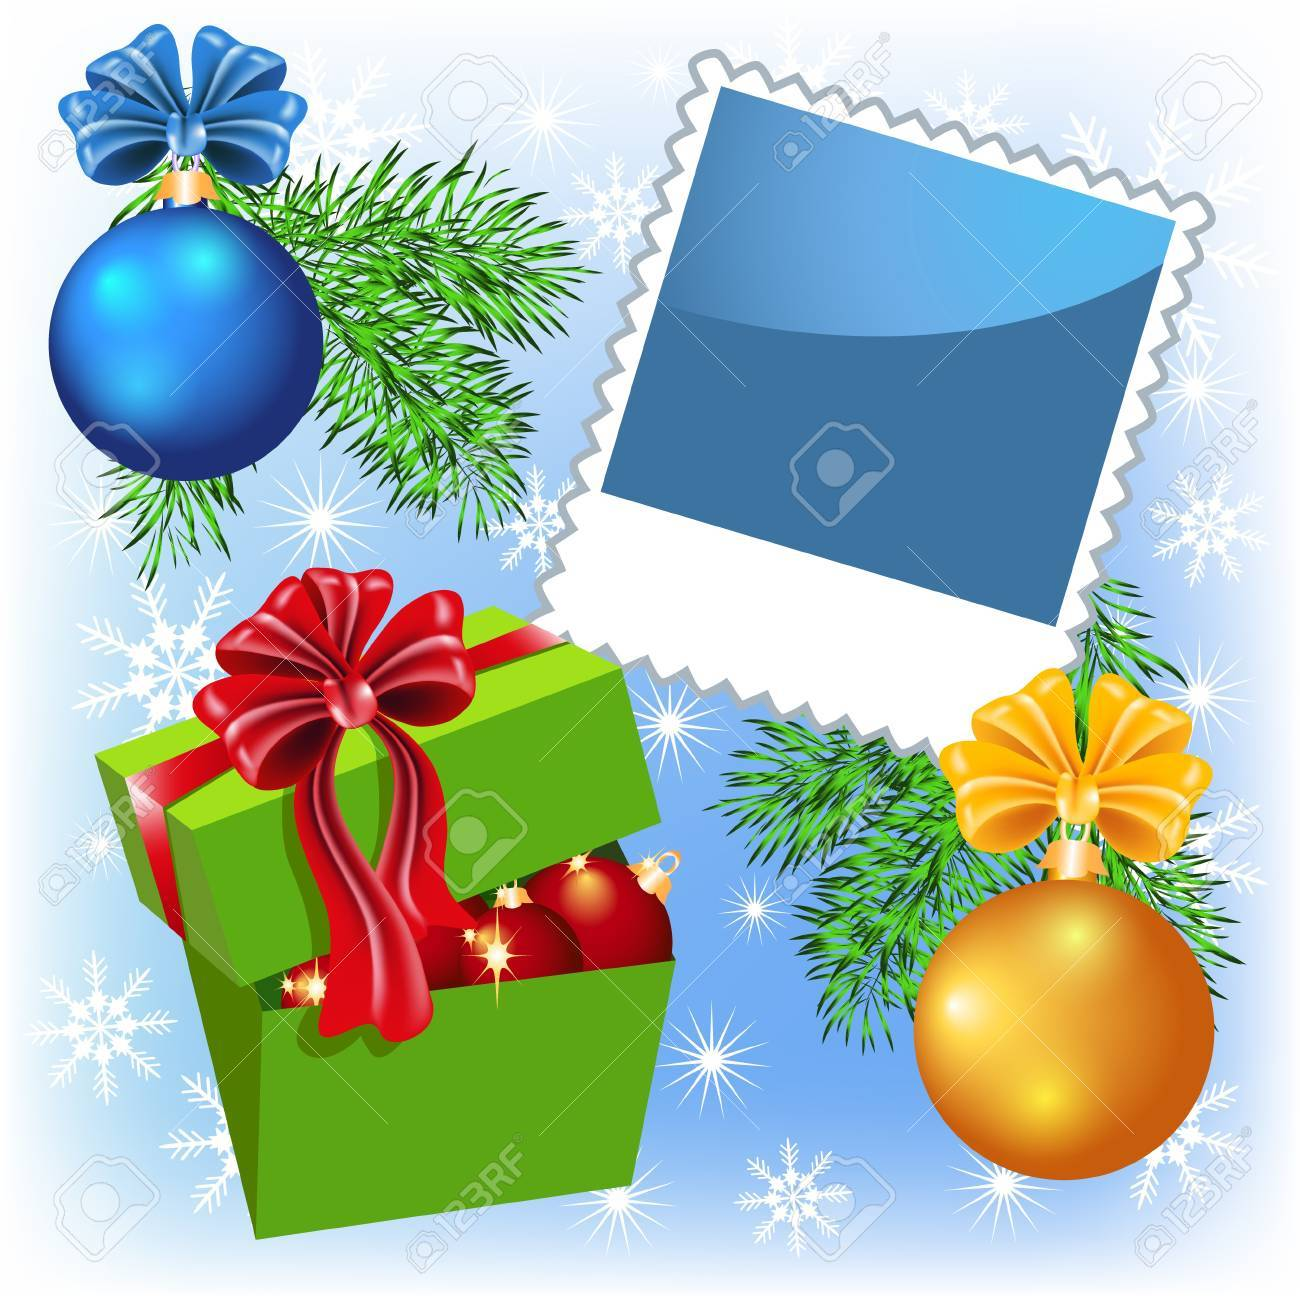 Page layout photo frame with Christmas balls and Gift Box Stock Vector - 11466480